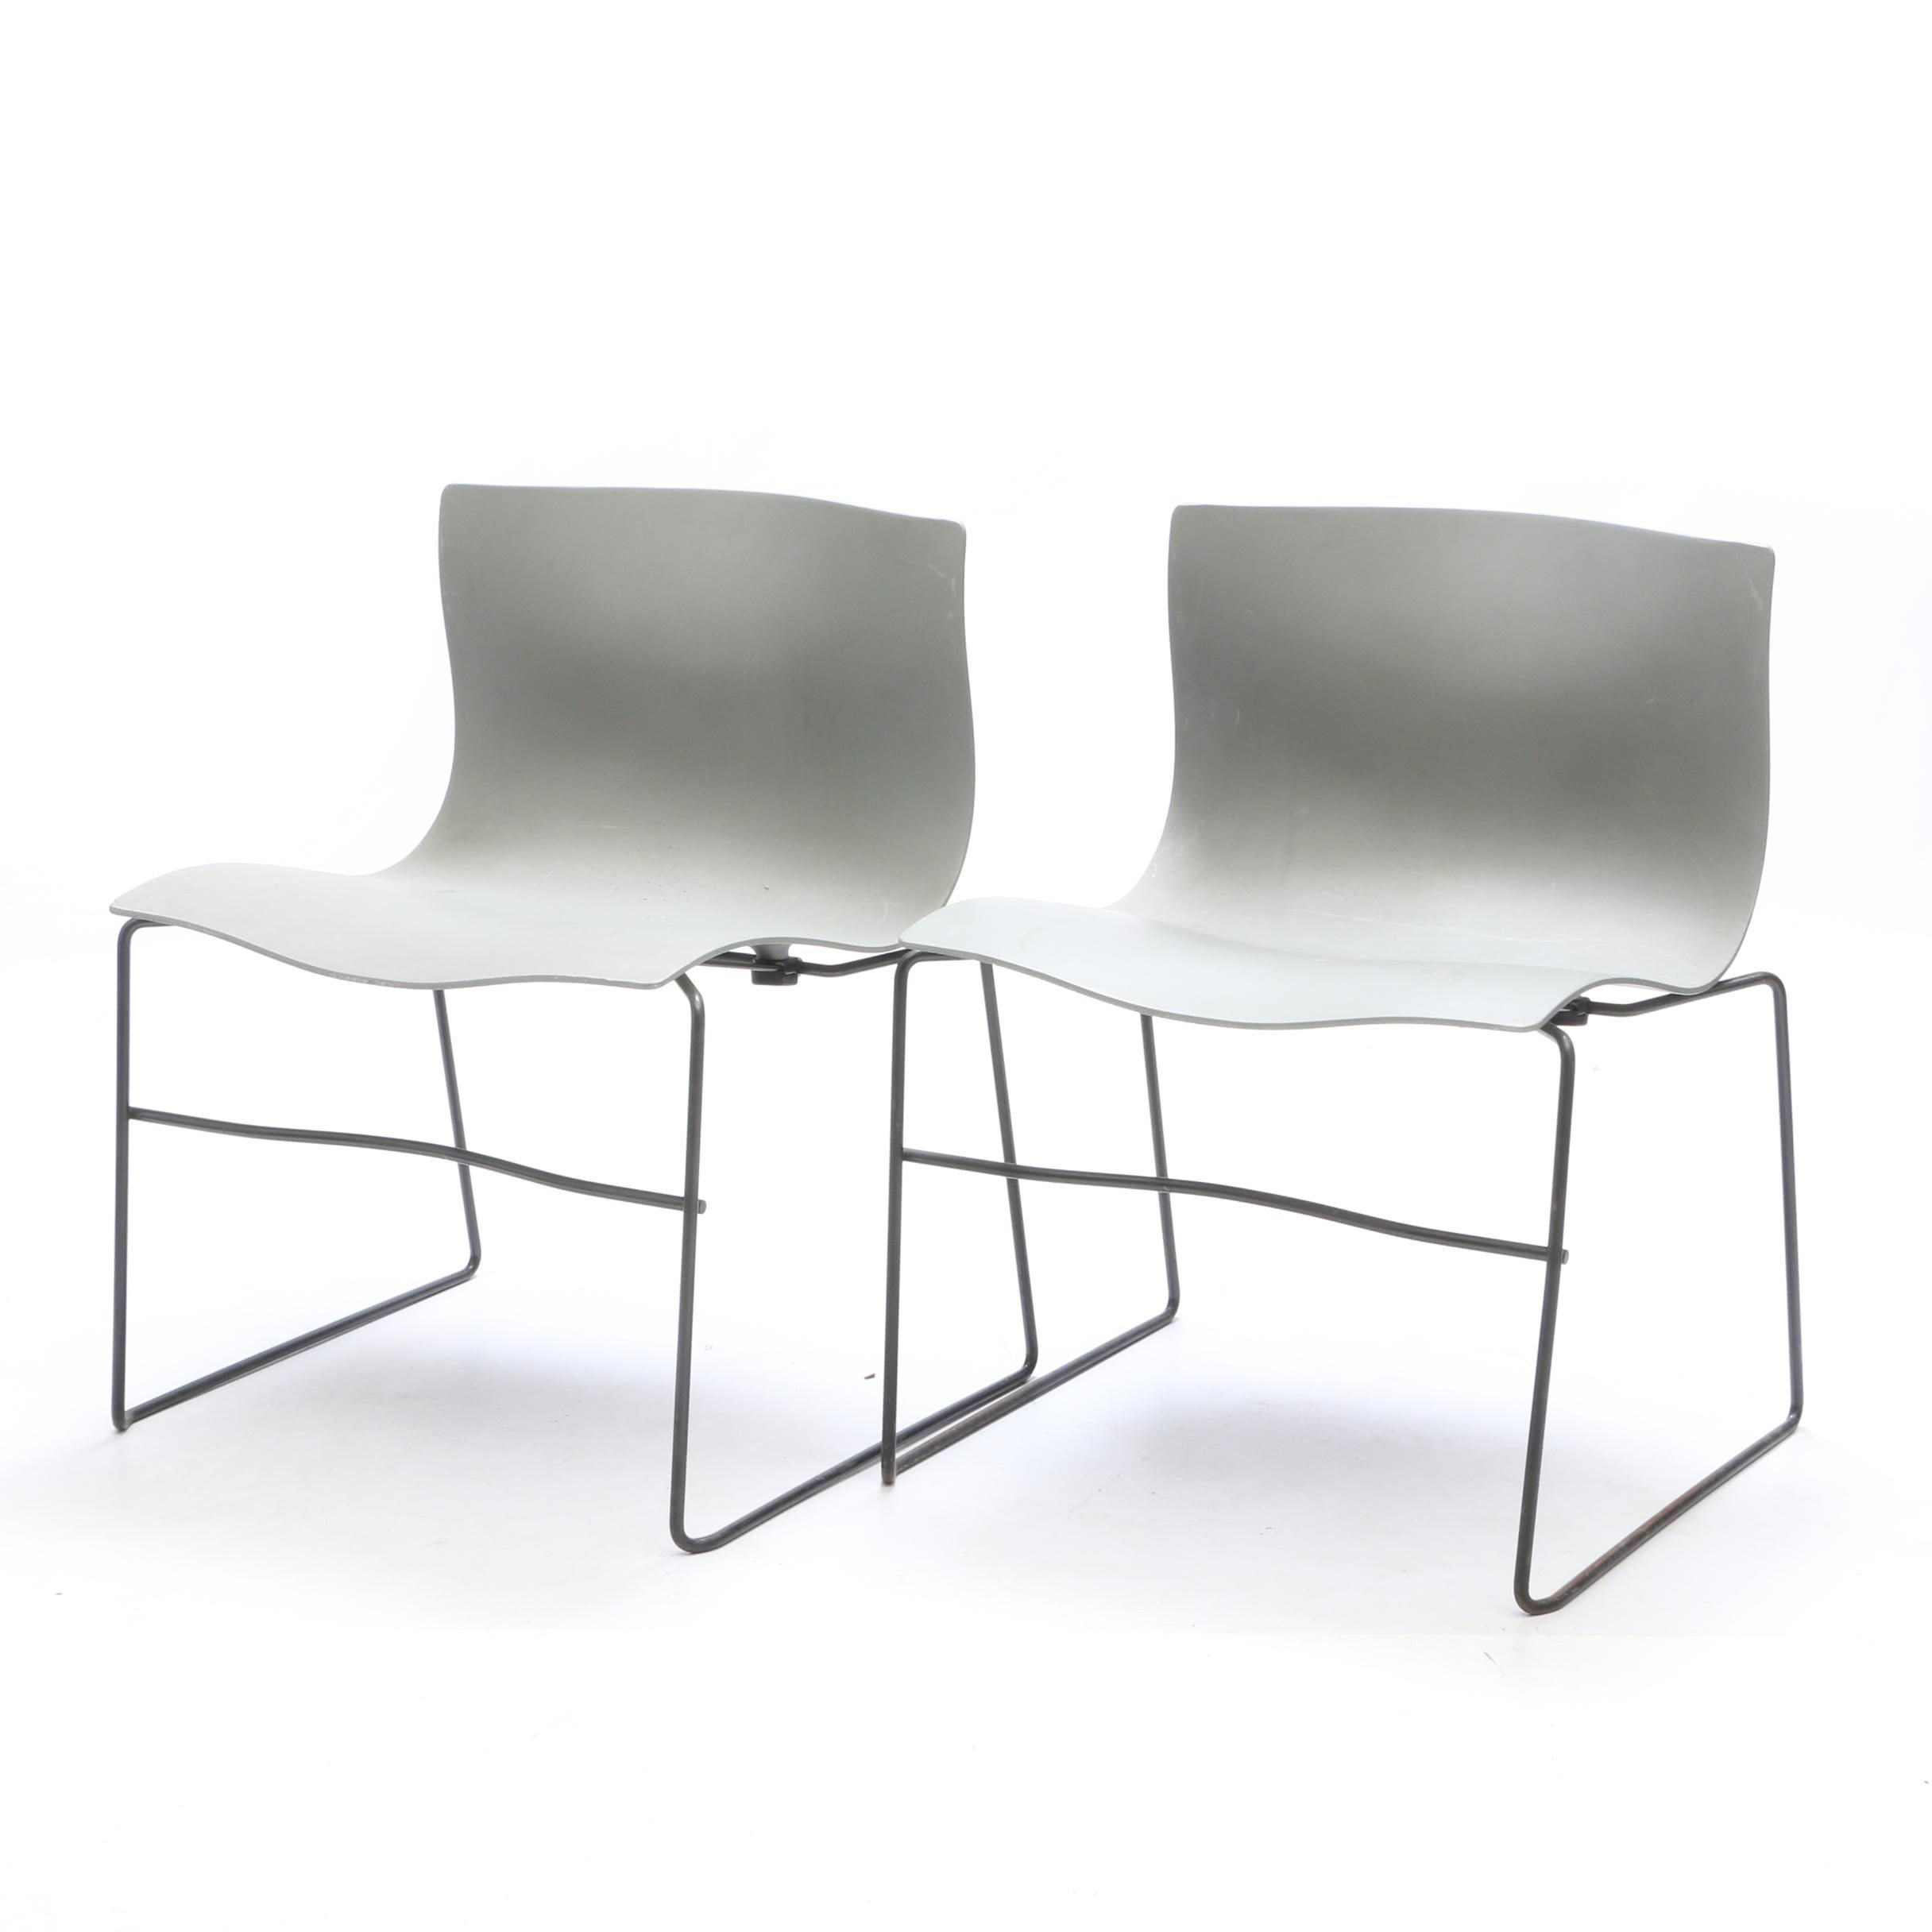 Vintage Handkerchief Chair by Massimo Vignelli for Knoll